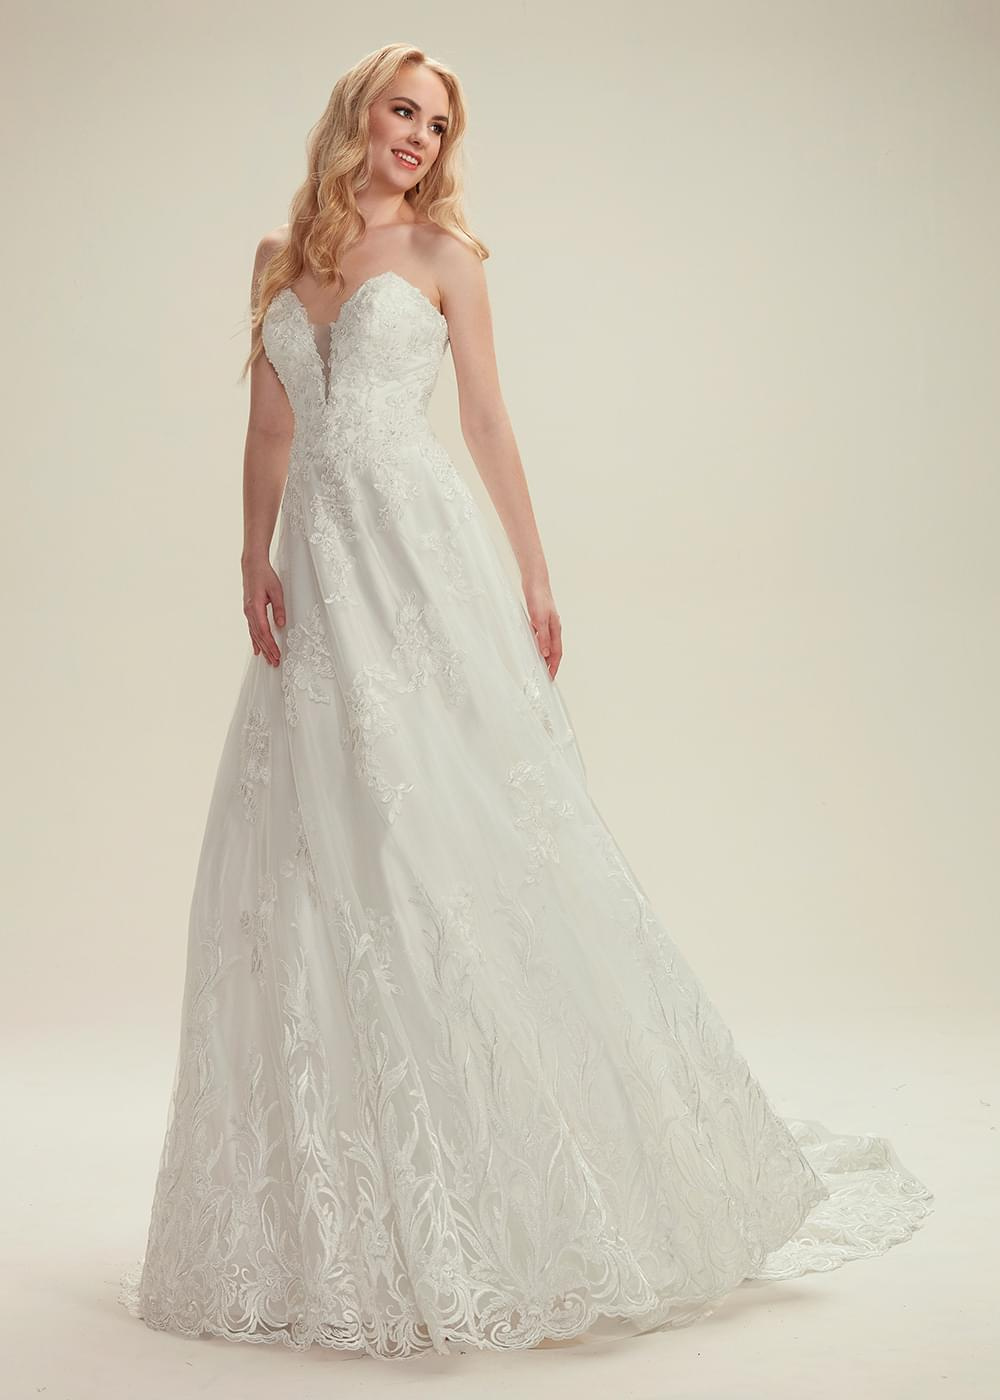 TH-Alyssa TH Wedding Dresses By Ashdon